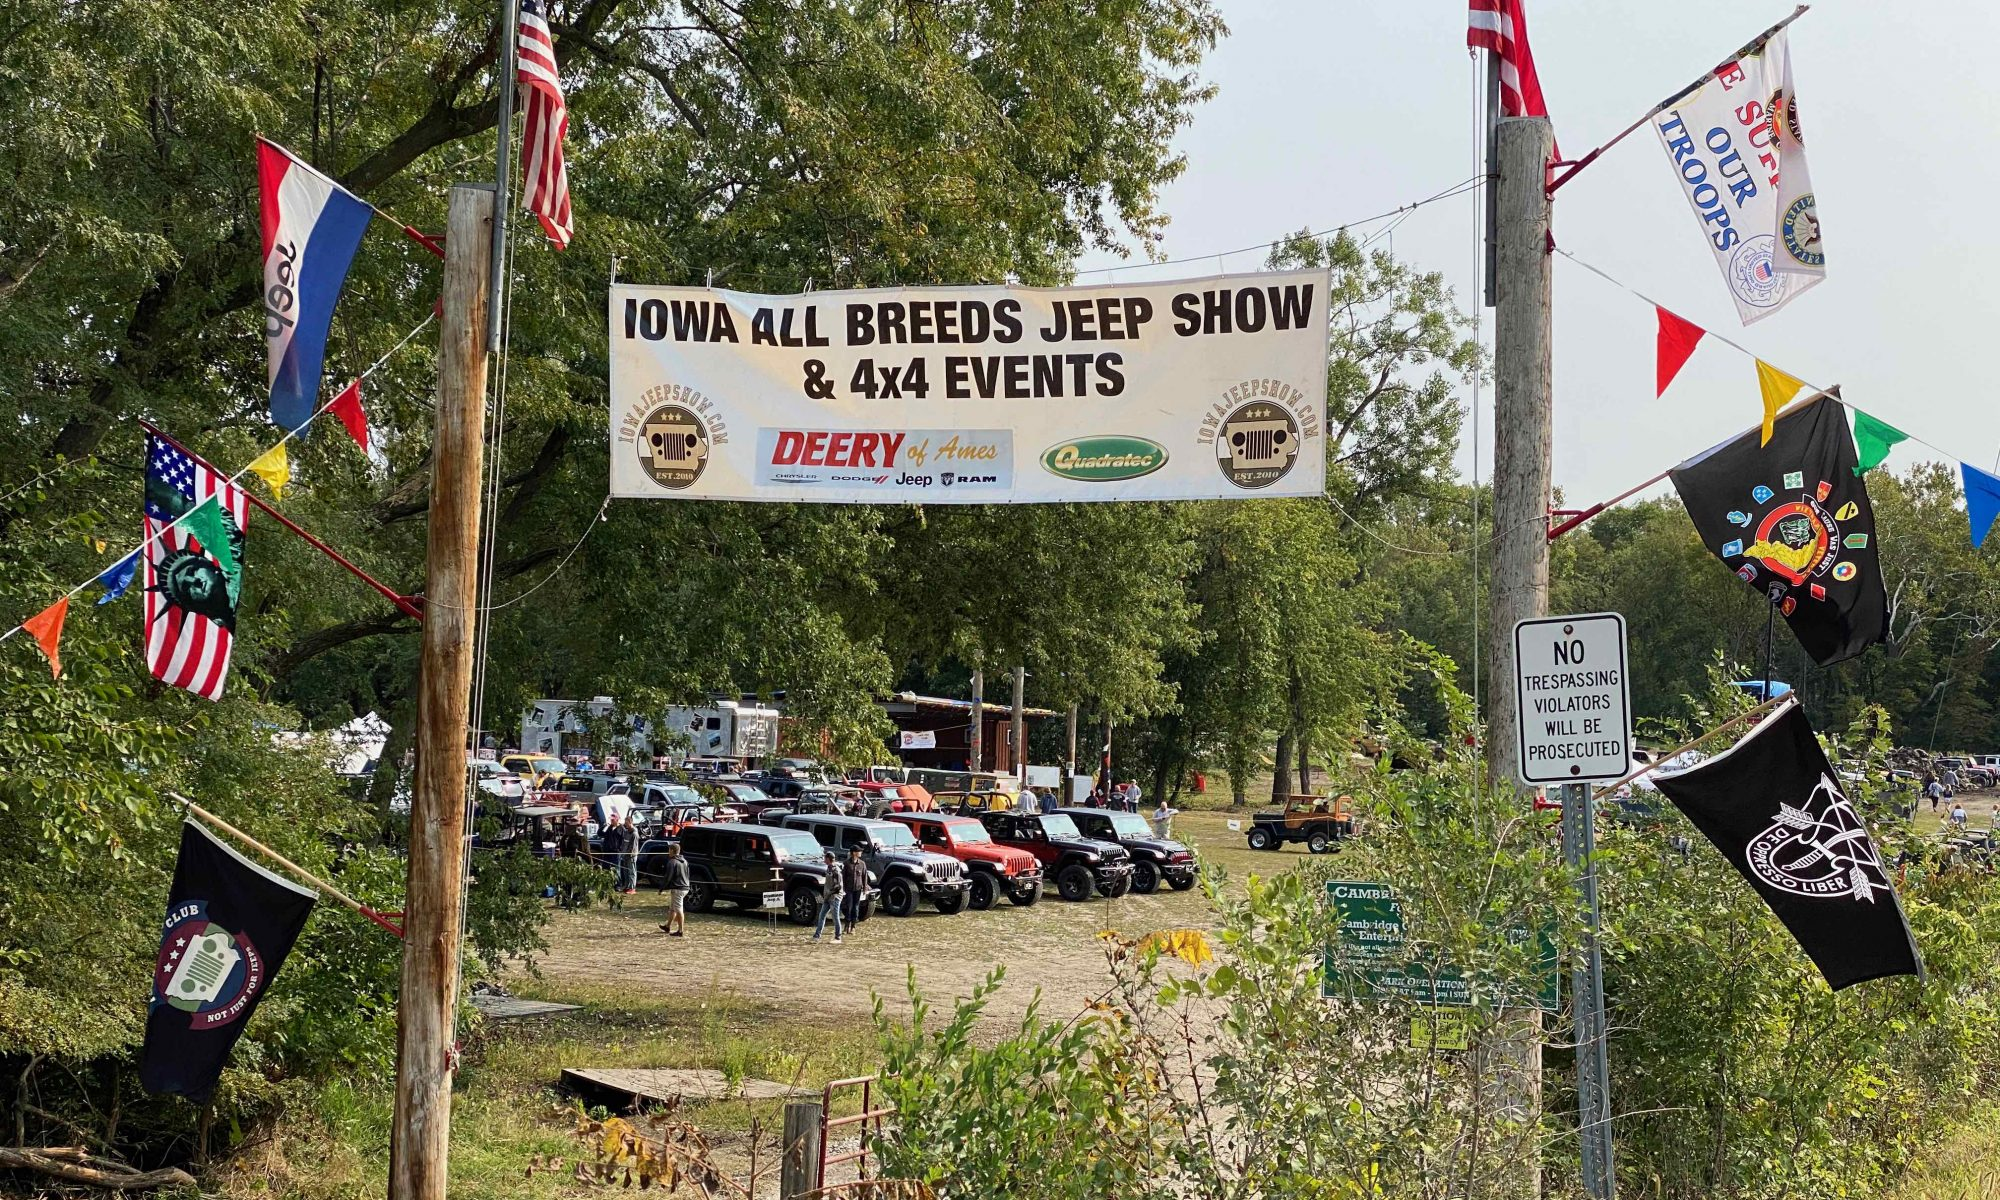 Iowa All Breeds Jeep Show